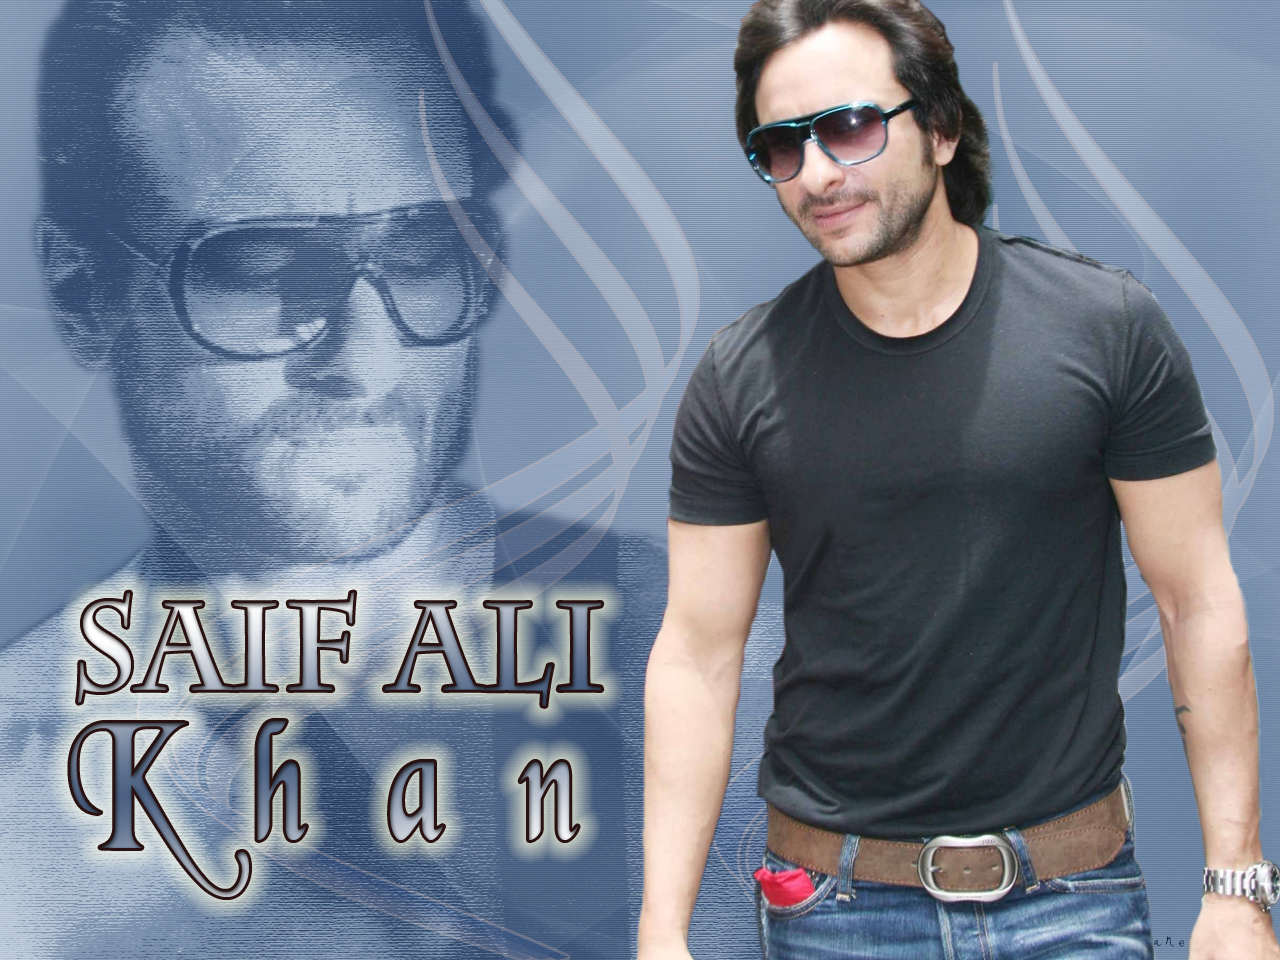 Saif Ali Khan Wallpaper: Free Games Wallpapers: Latest Saif Ali Khan Wallpapers